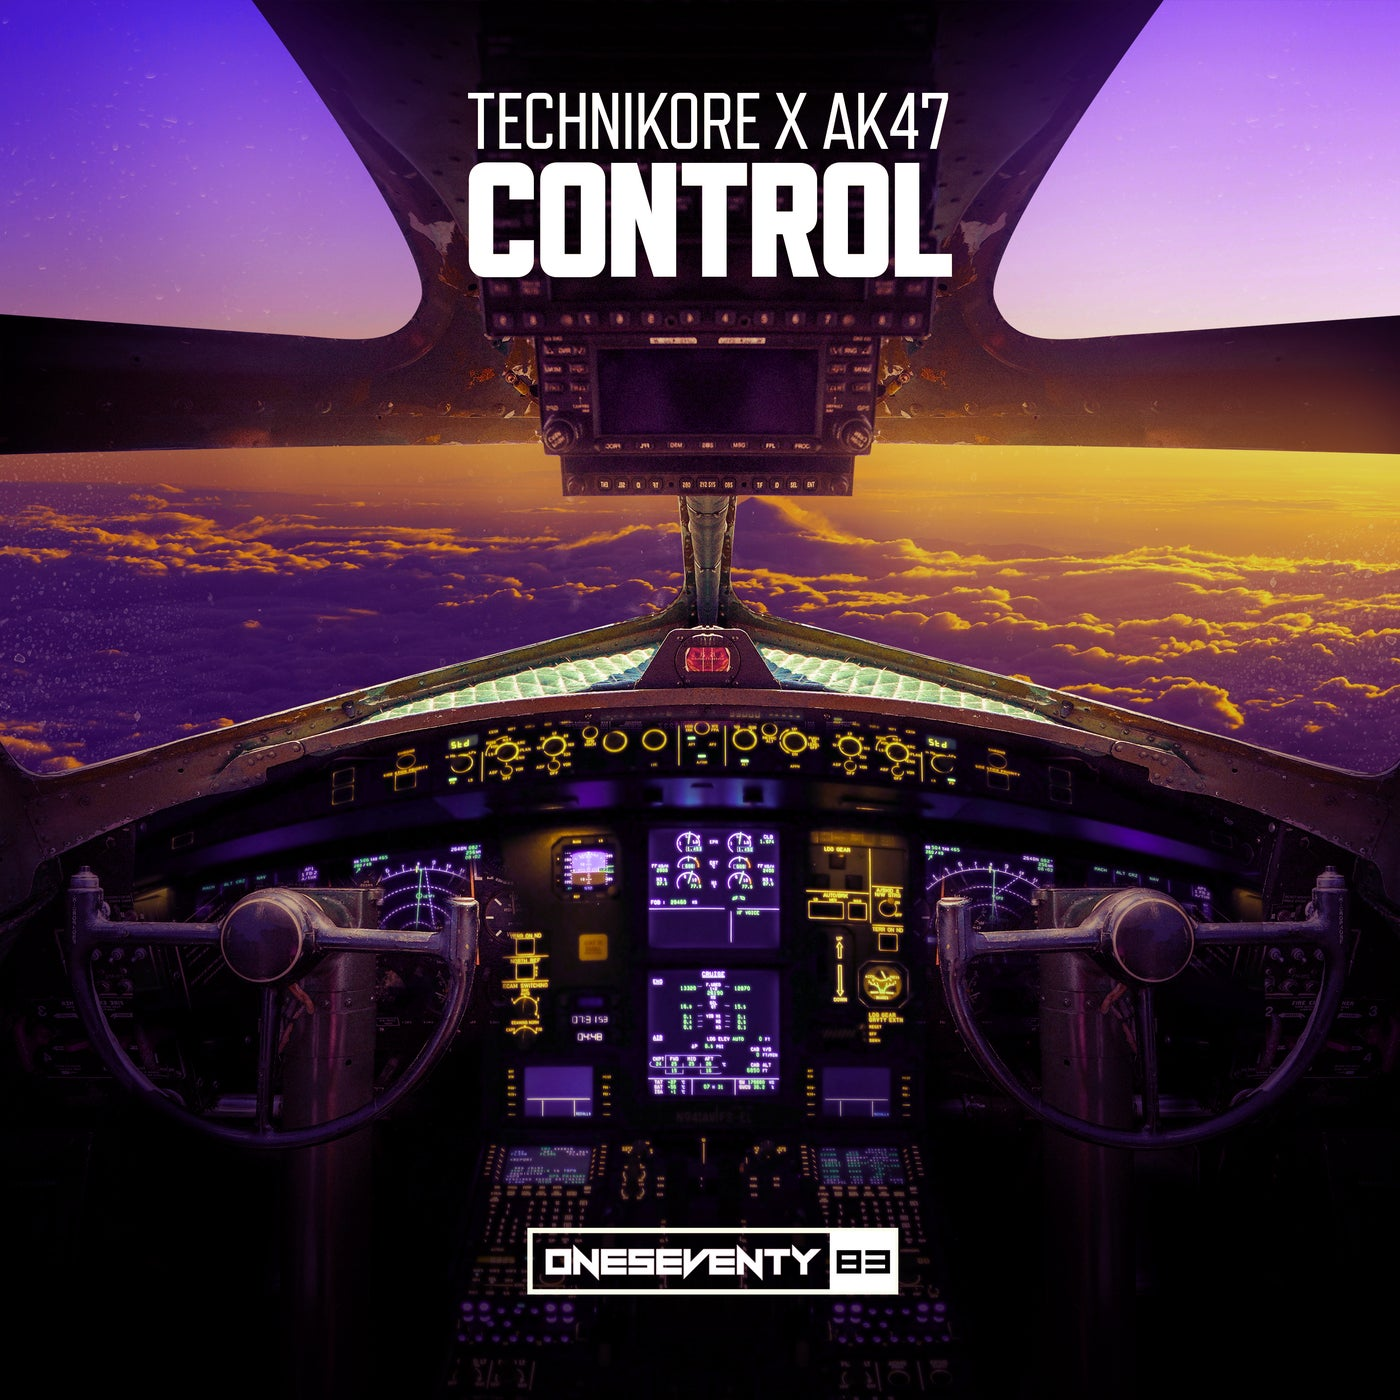 Control (Extended Mix)